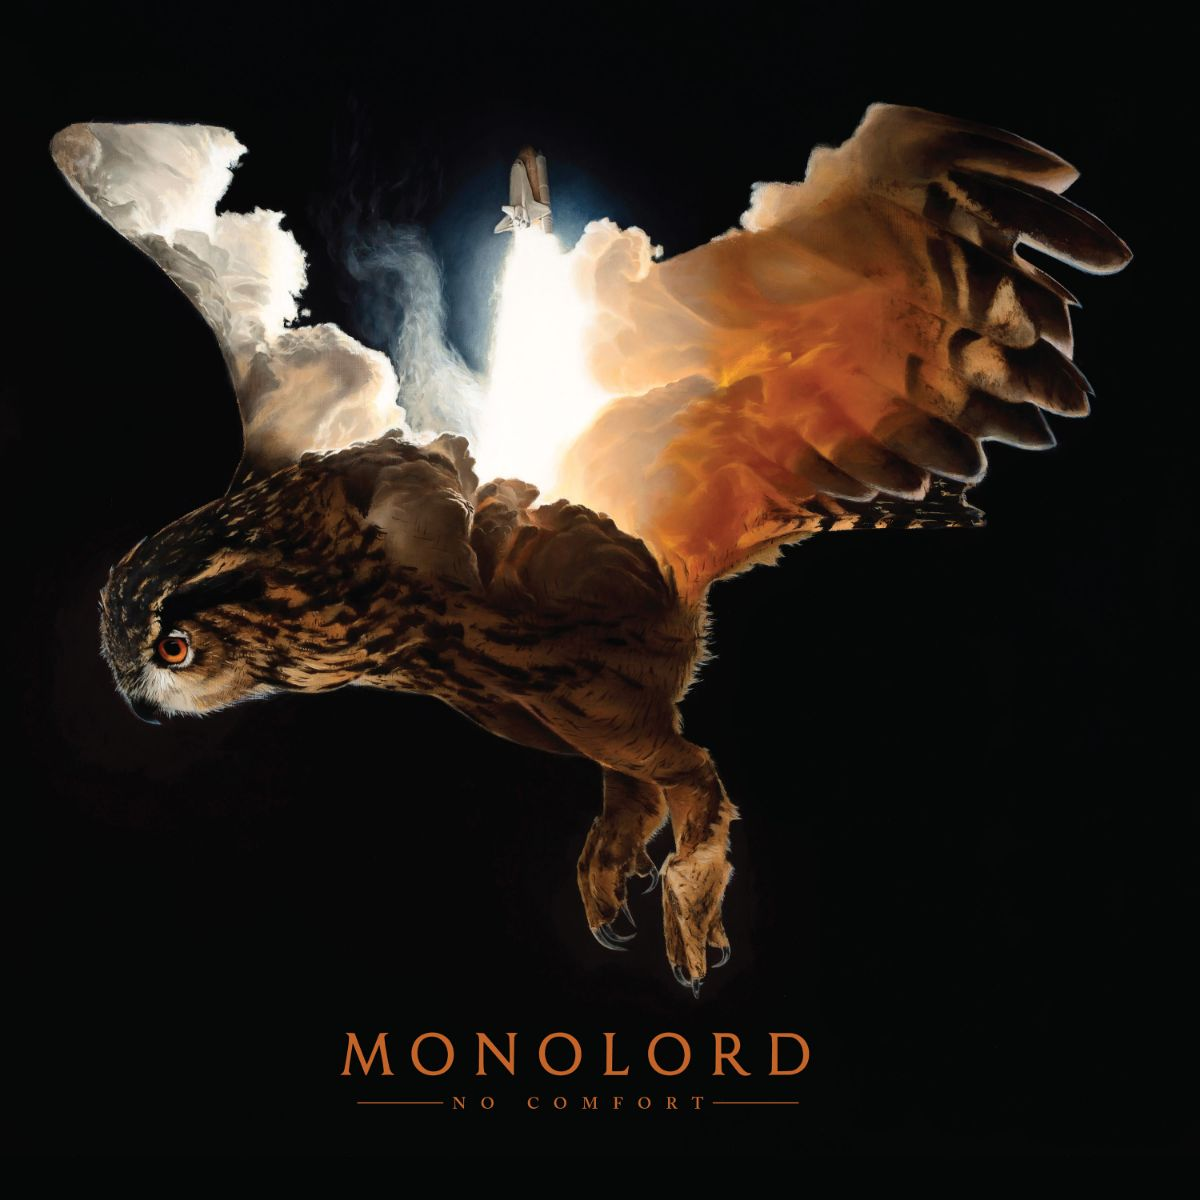 Monolord new album No Comfort